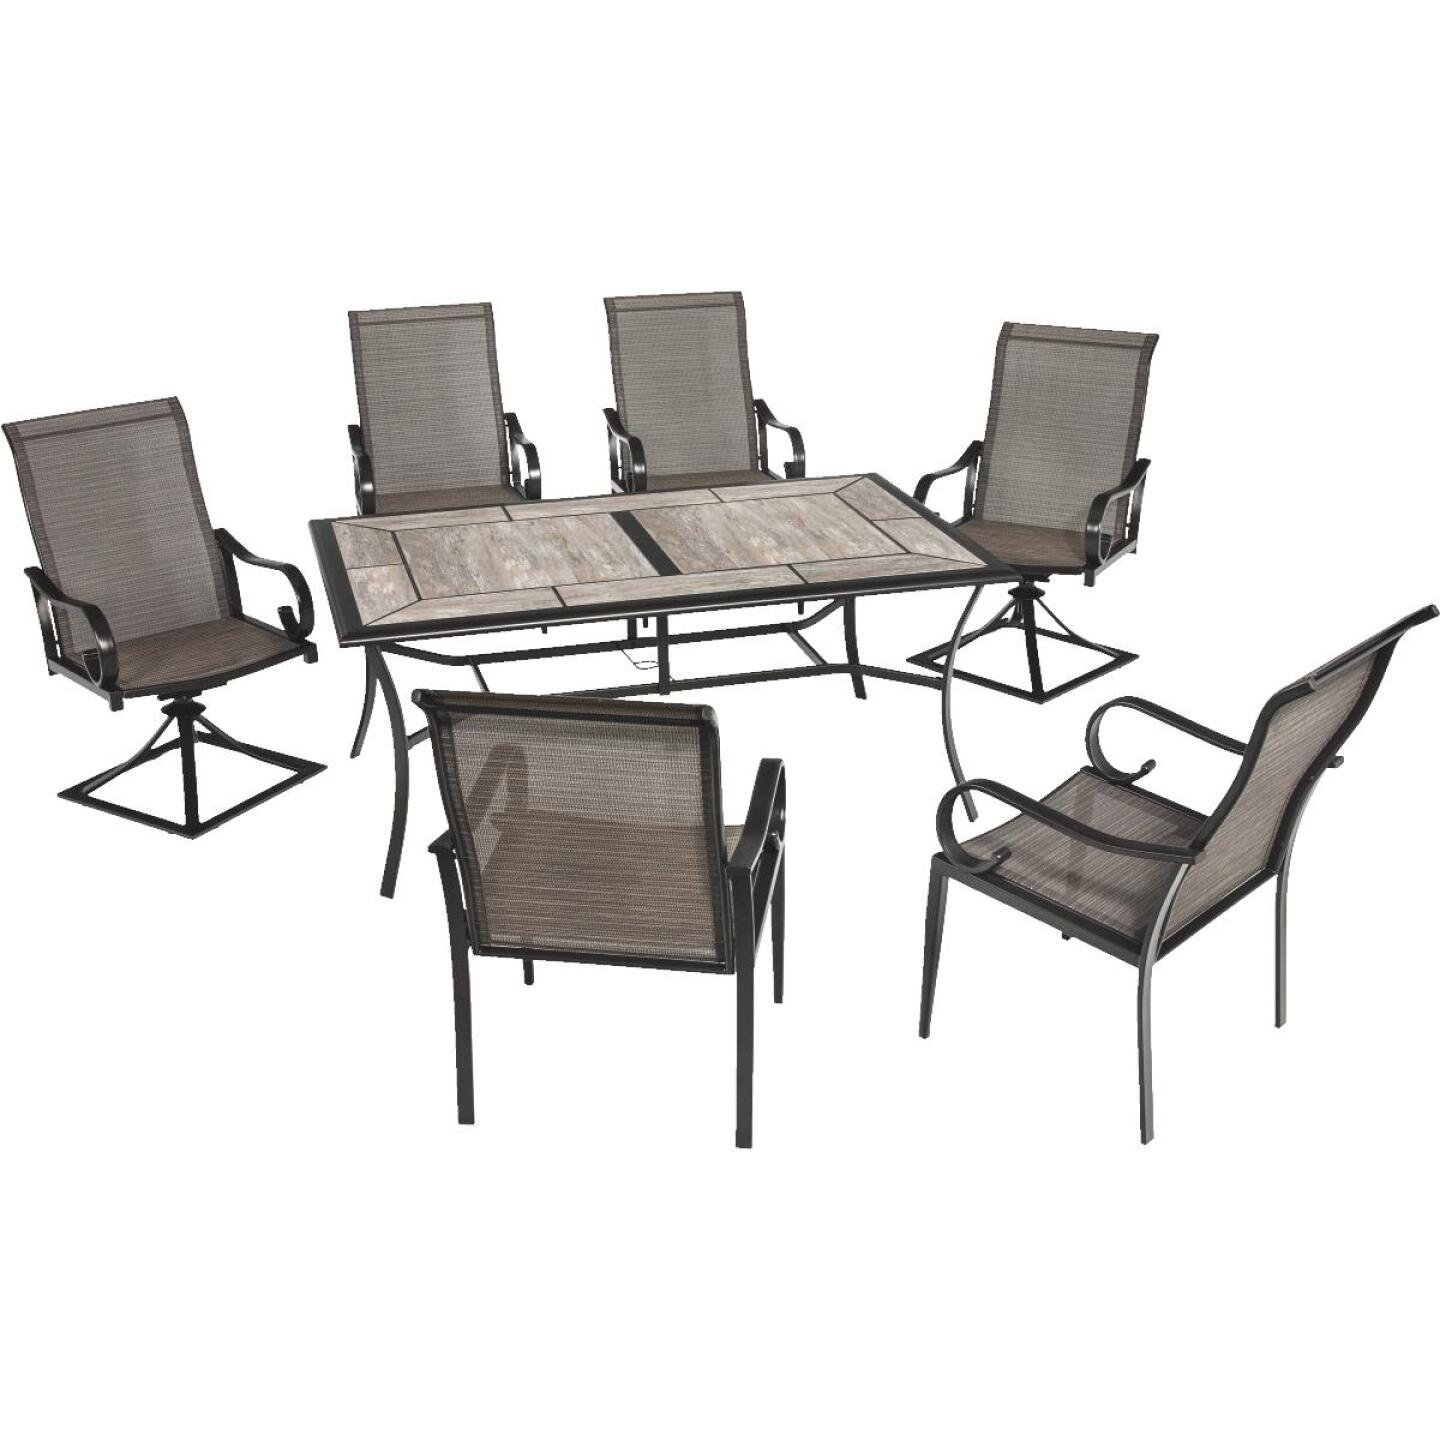 Outdoor Expressions Berkshire 7-Piece Dining Set Image 83